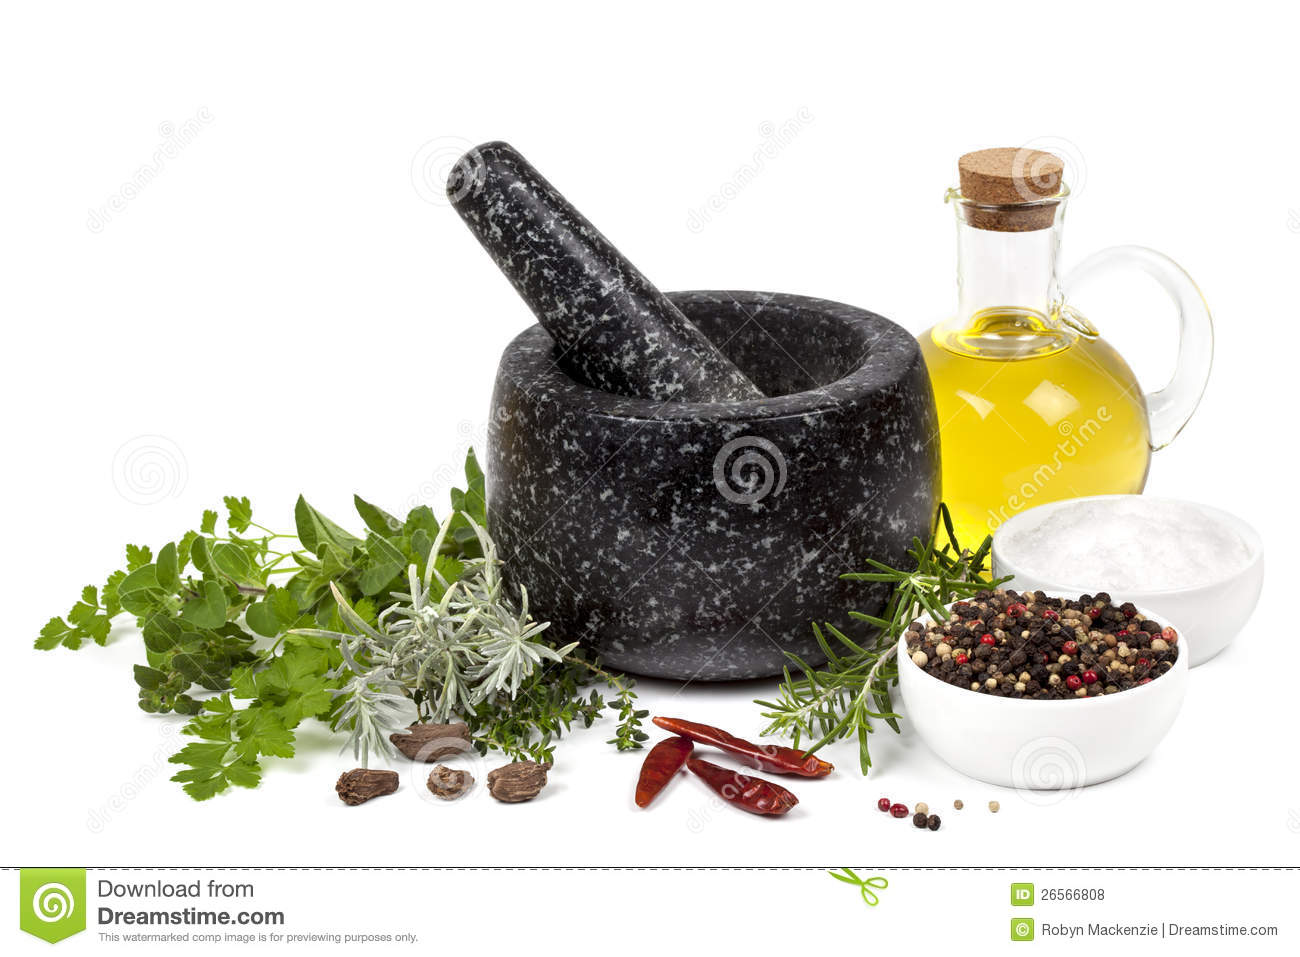 Mortar And Pestle With Herbs And Spices Royalty Free Stock